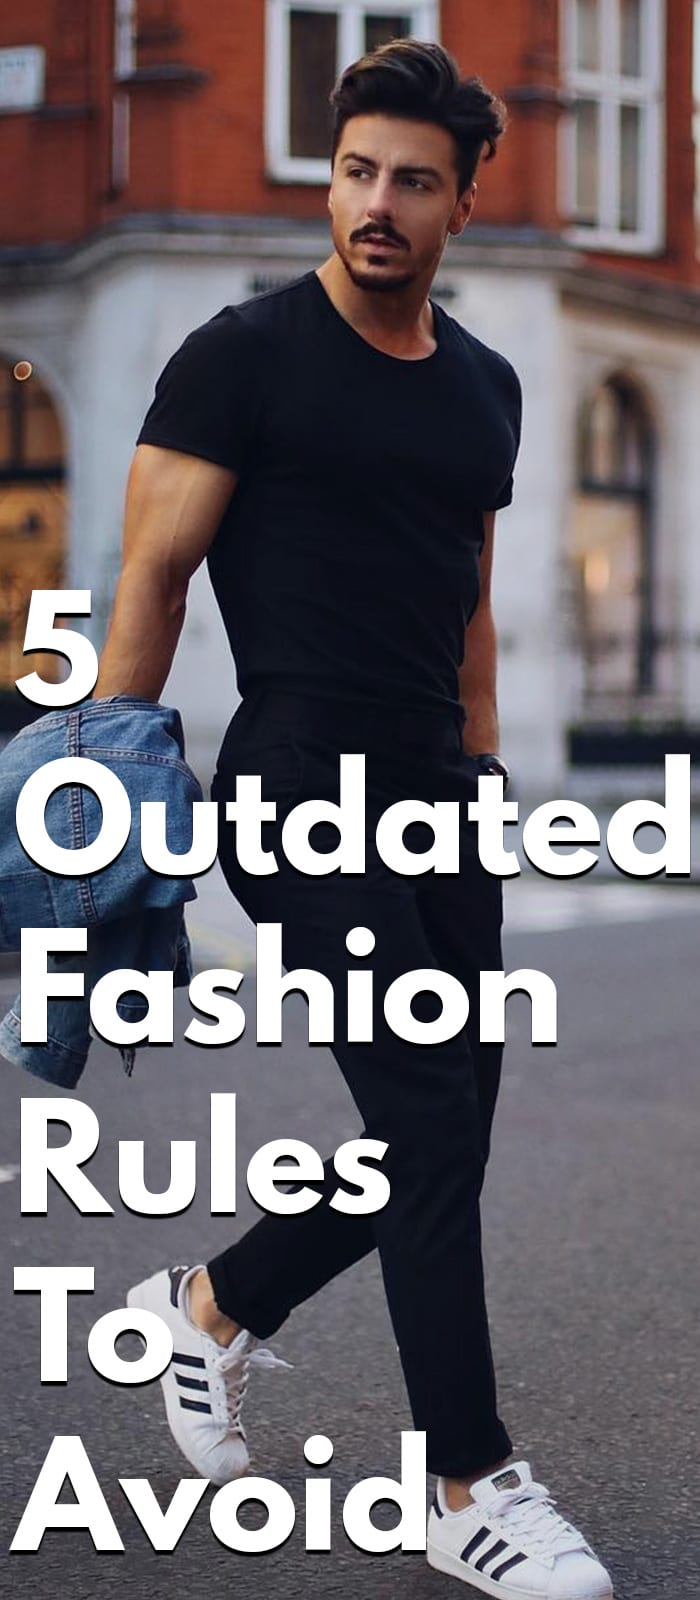 5 Outdated Fashion Rules To Avoid